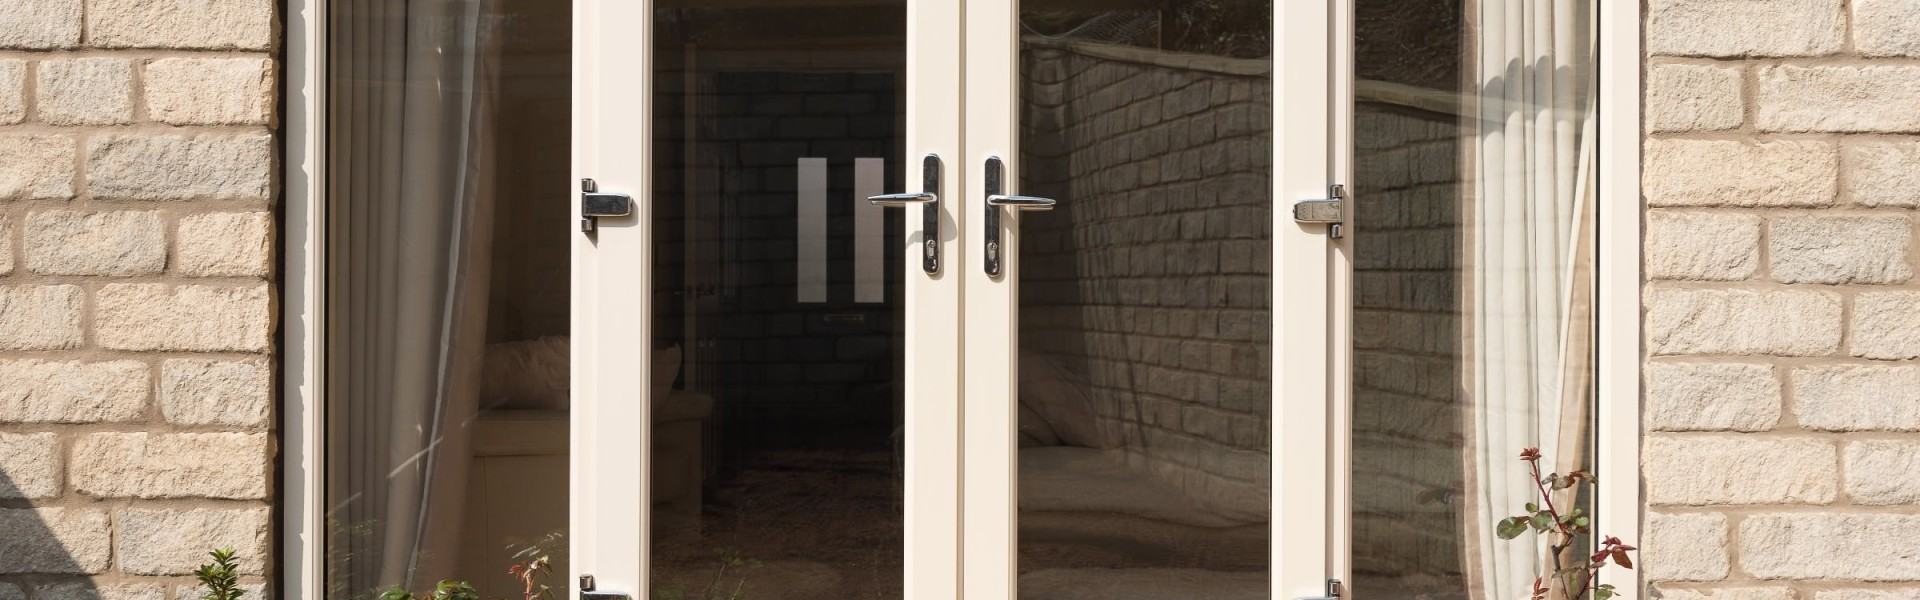 Trade Upvc French Doors Poole Trade French Door Prices